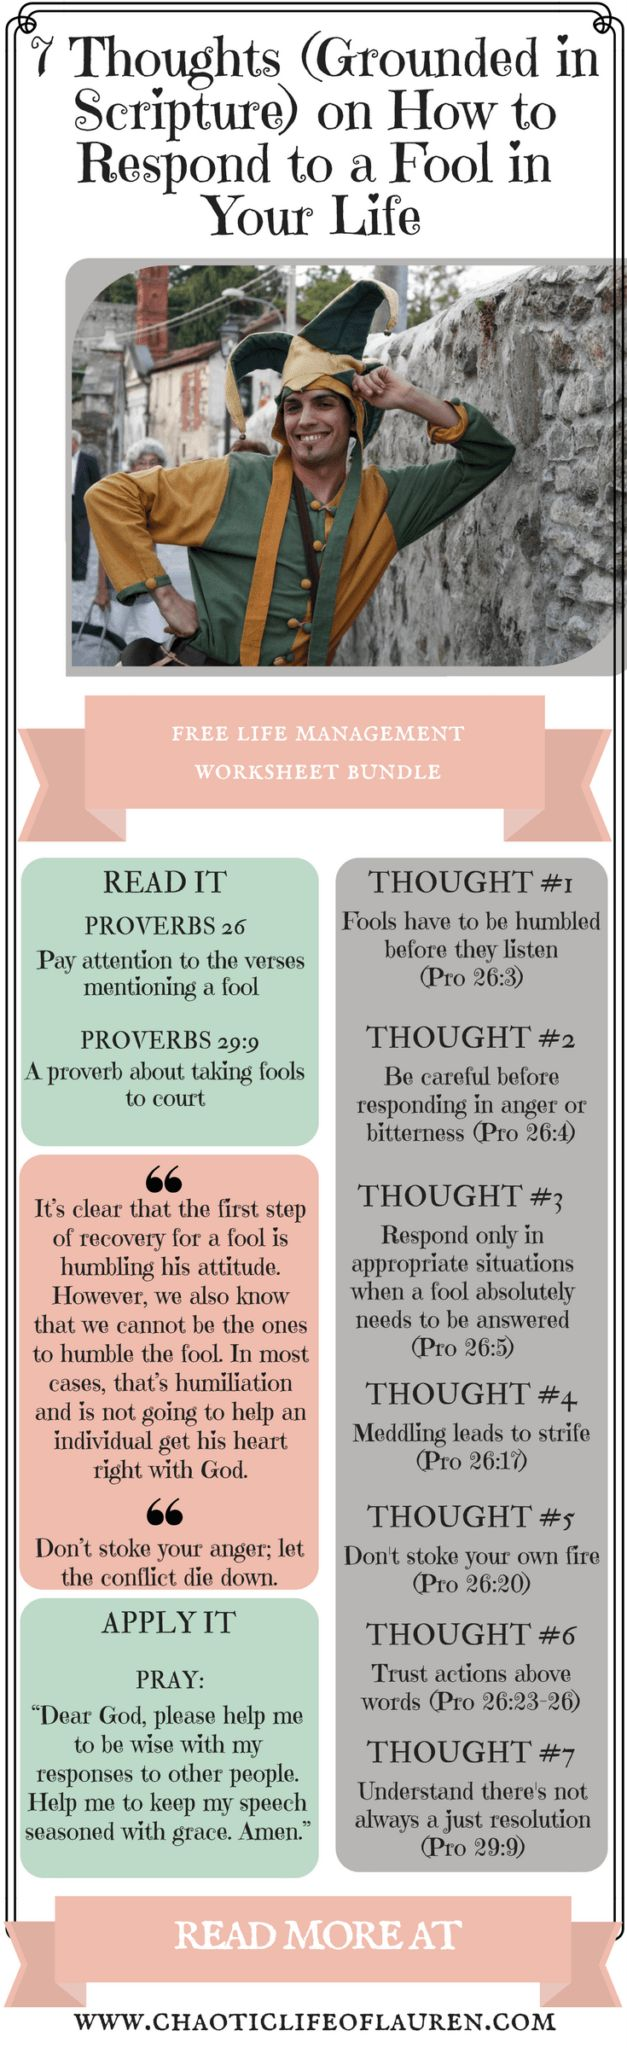 How do we respond to a fool in our life?   Christian Lifestyle   Biblical Womanhood   Devotional   Finding Balance   Chaotic Life   Managing Relationships   Foolishness   Wisdom